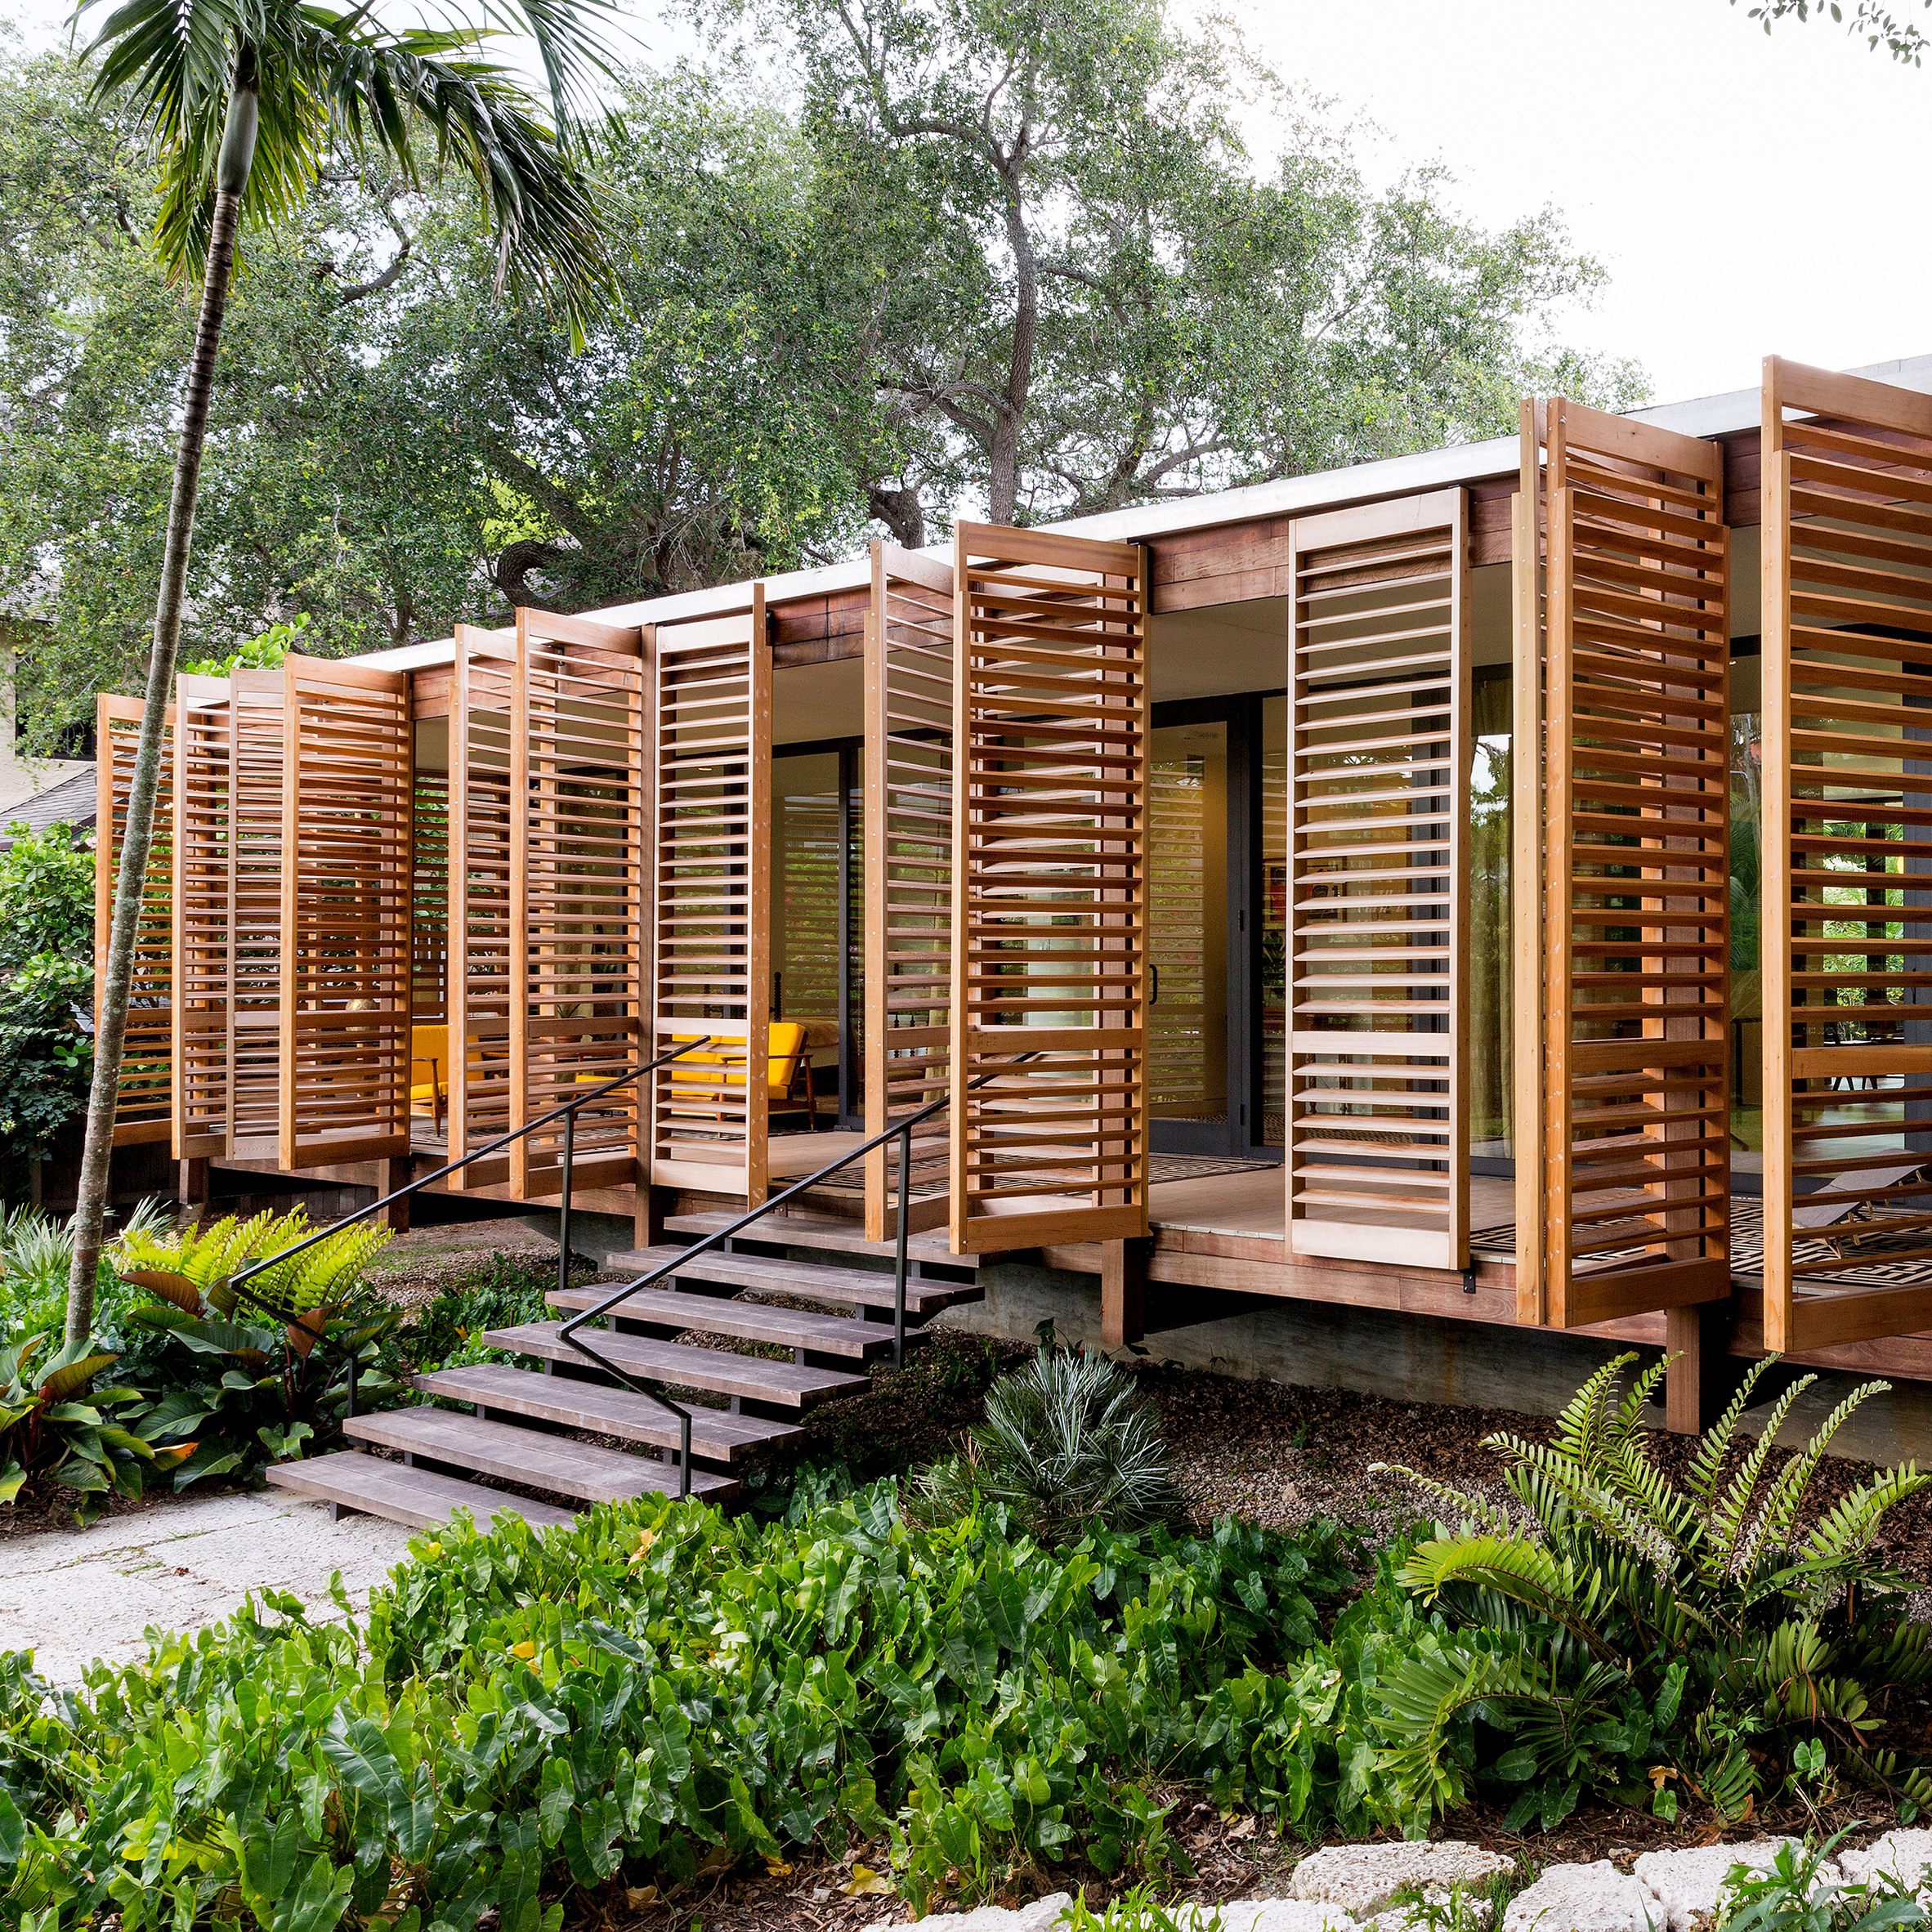 Wooden shutters open to reveal Miami house by Brillhart